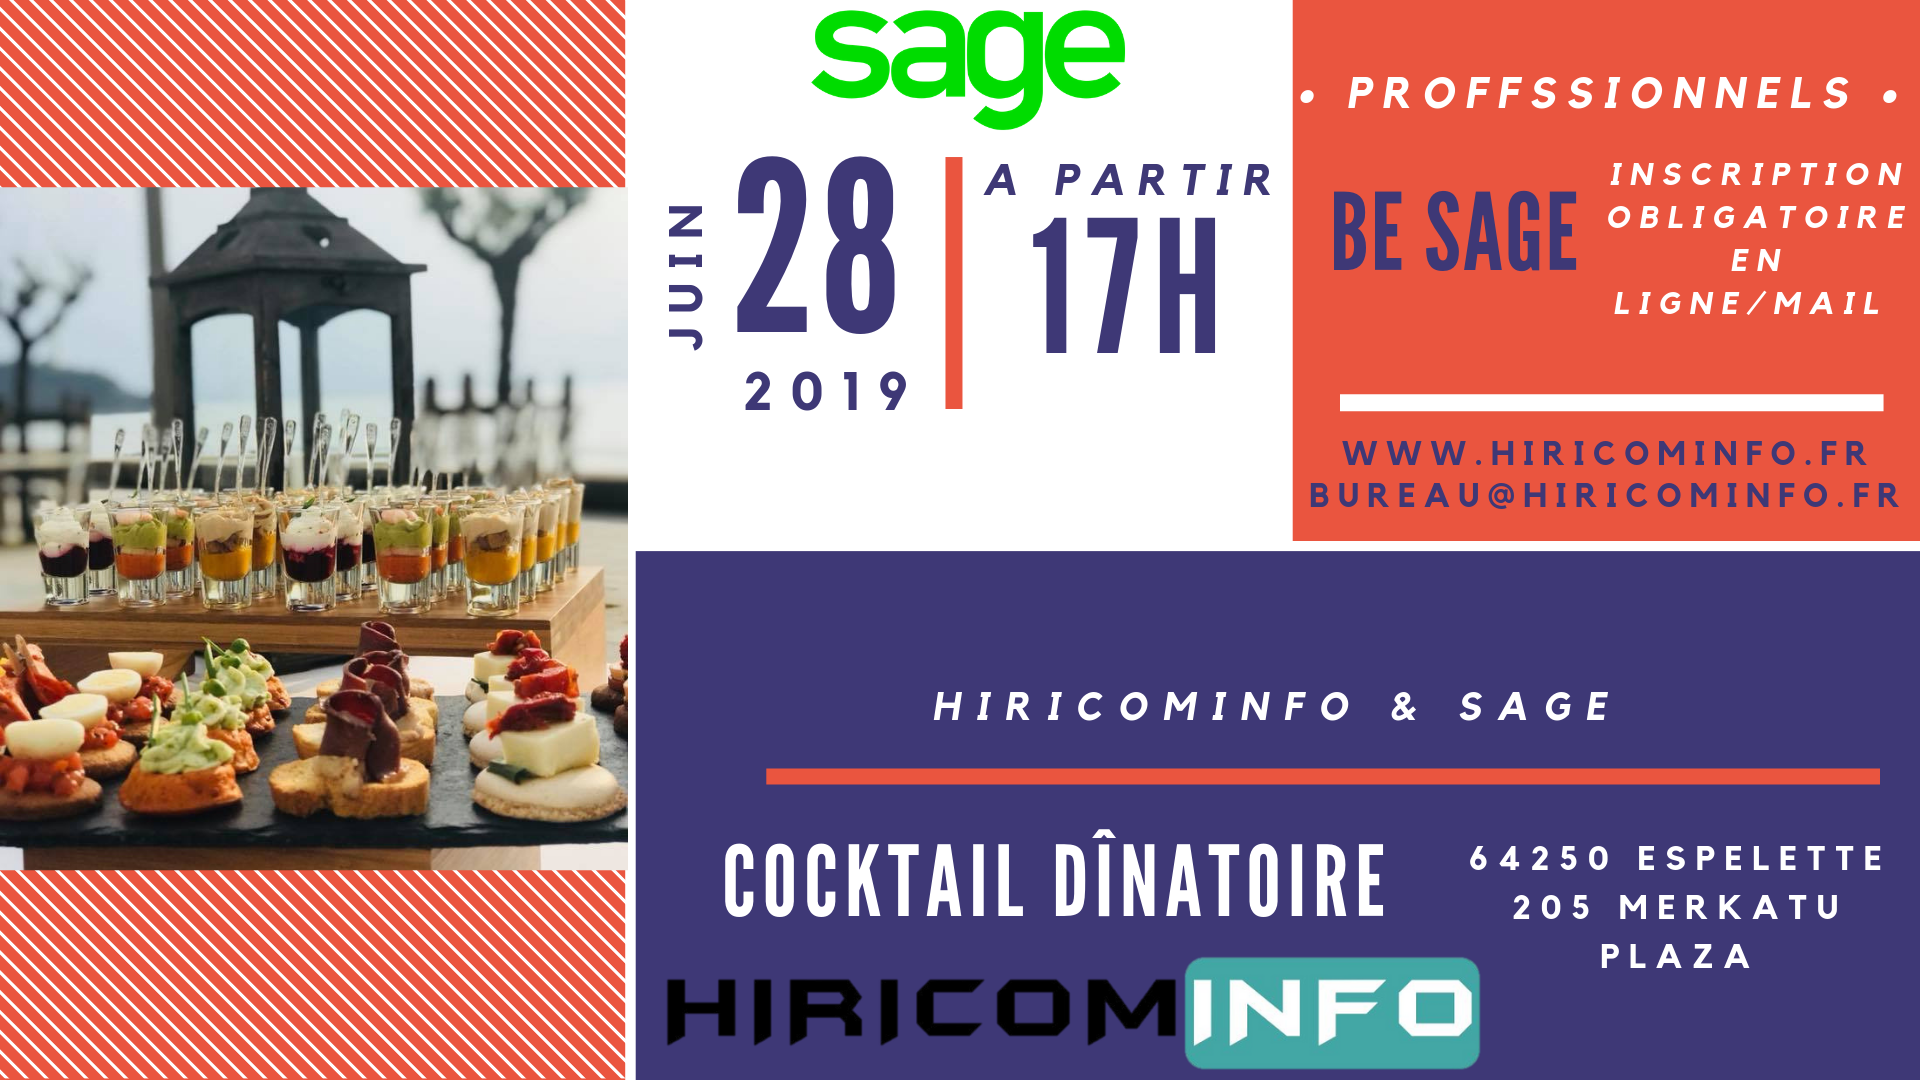 Inscription Cocktail Dînatoire HIRICOMINFO & SAGE